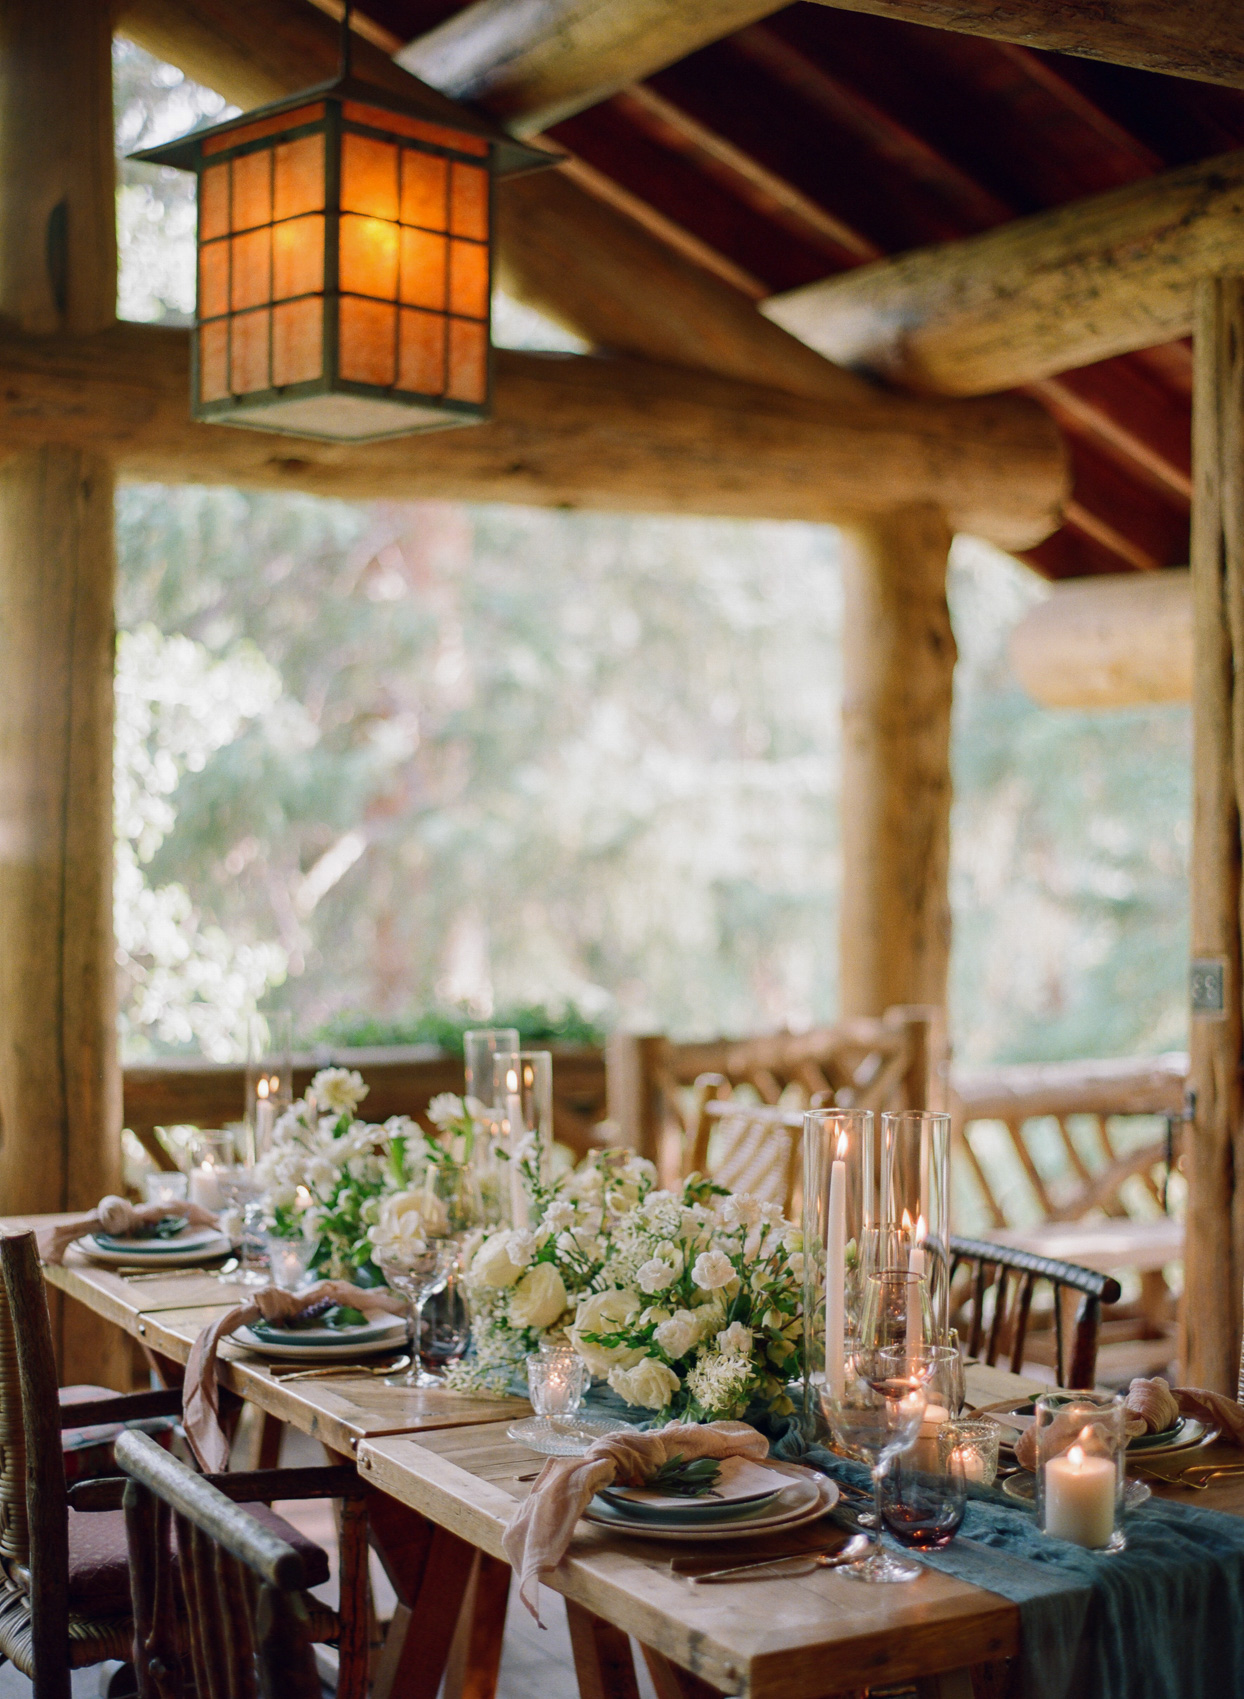 reception tables set with flowers and candles